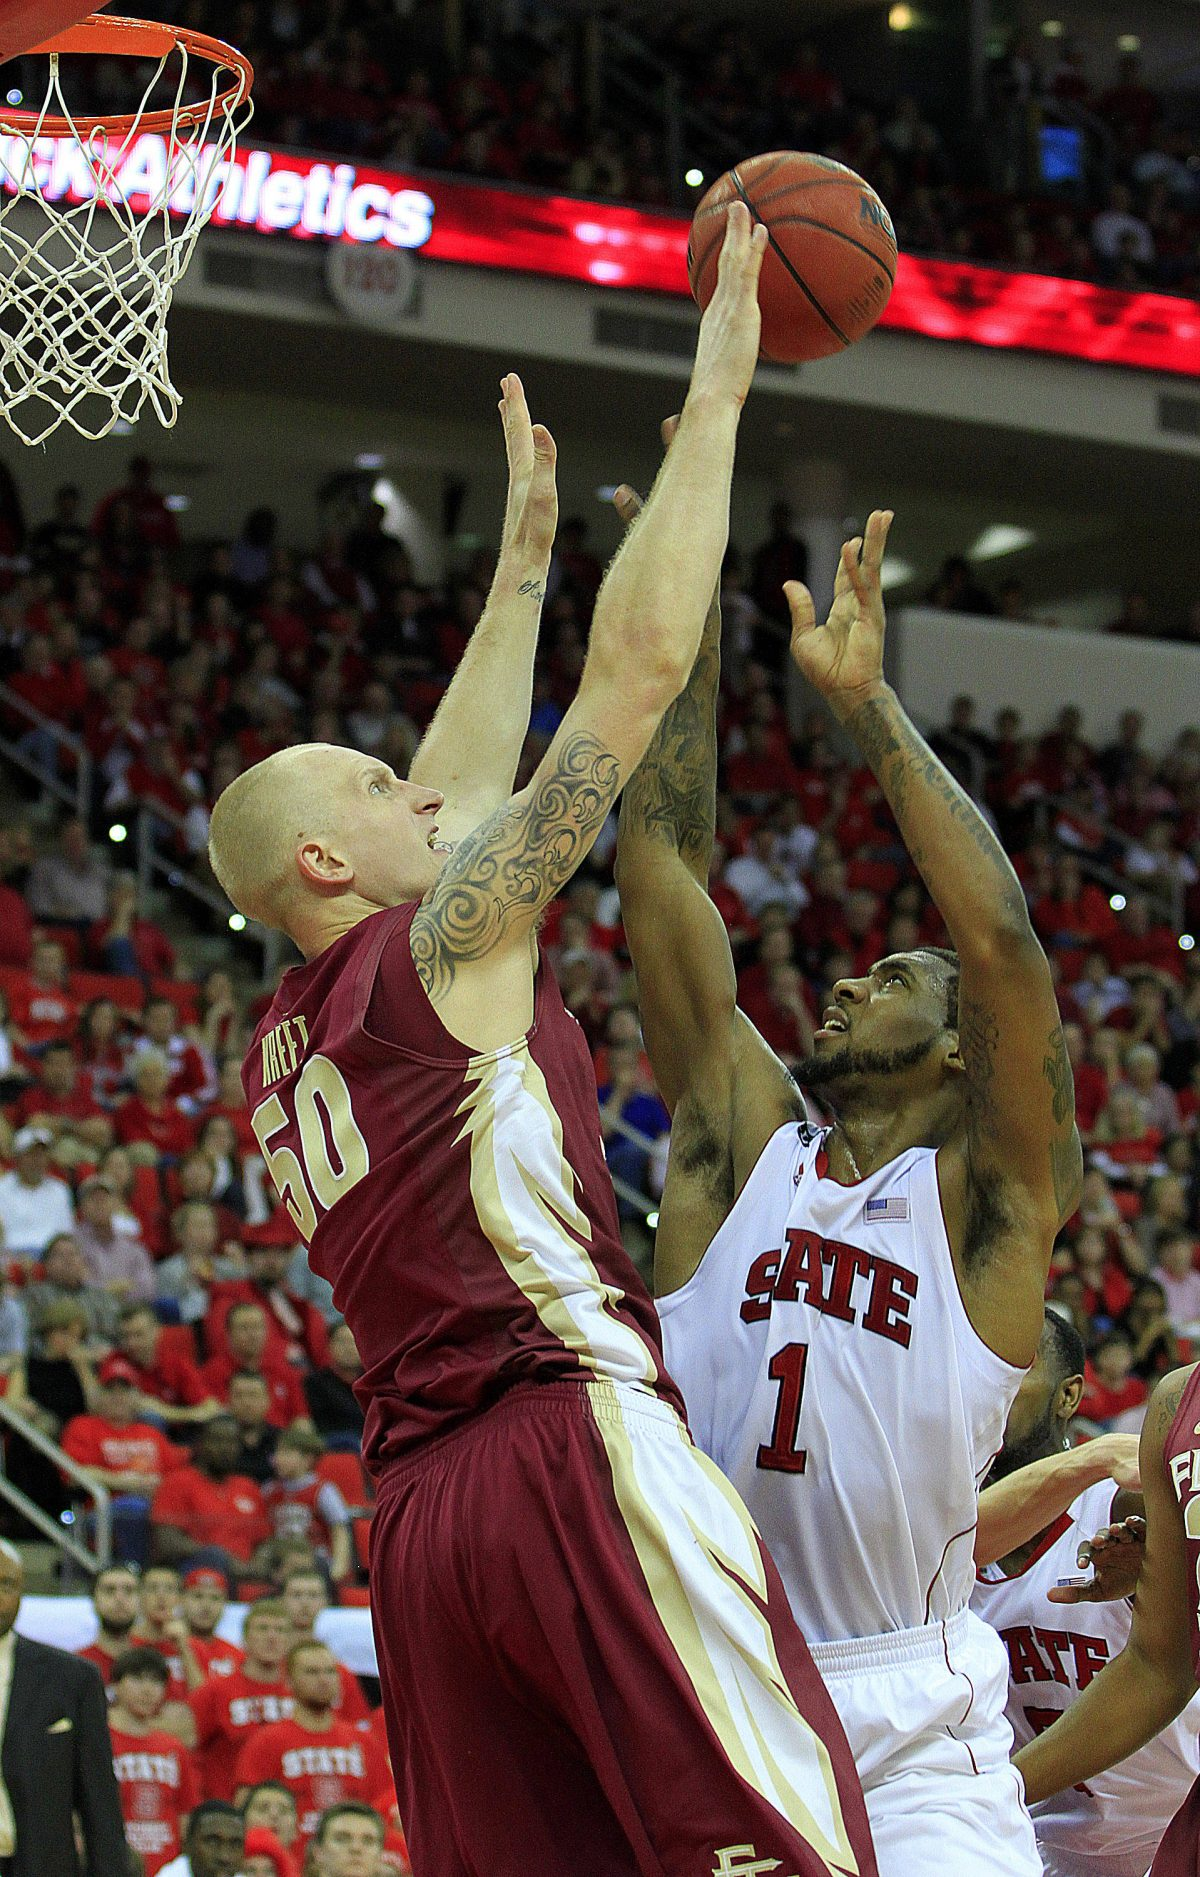 North Carolinas Richard Howell (1) tries to shoot the ball over Florida State's Jon Kreft (50) during the first half of an NCAA college basketball game in Raleigh, N.C., Saturday, Feb. 18, 2012. (AP Photo/Karl B DeBlaker)